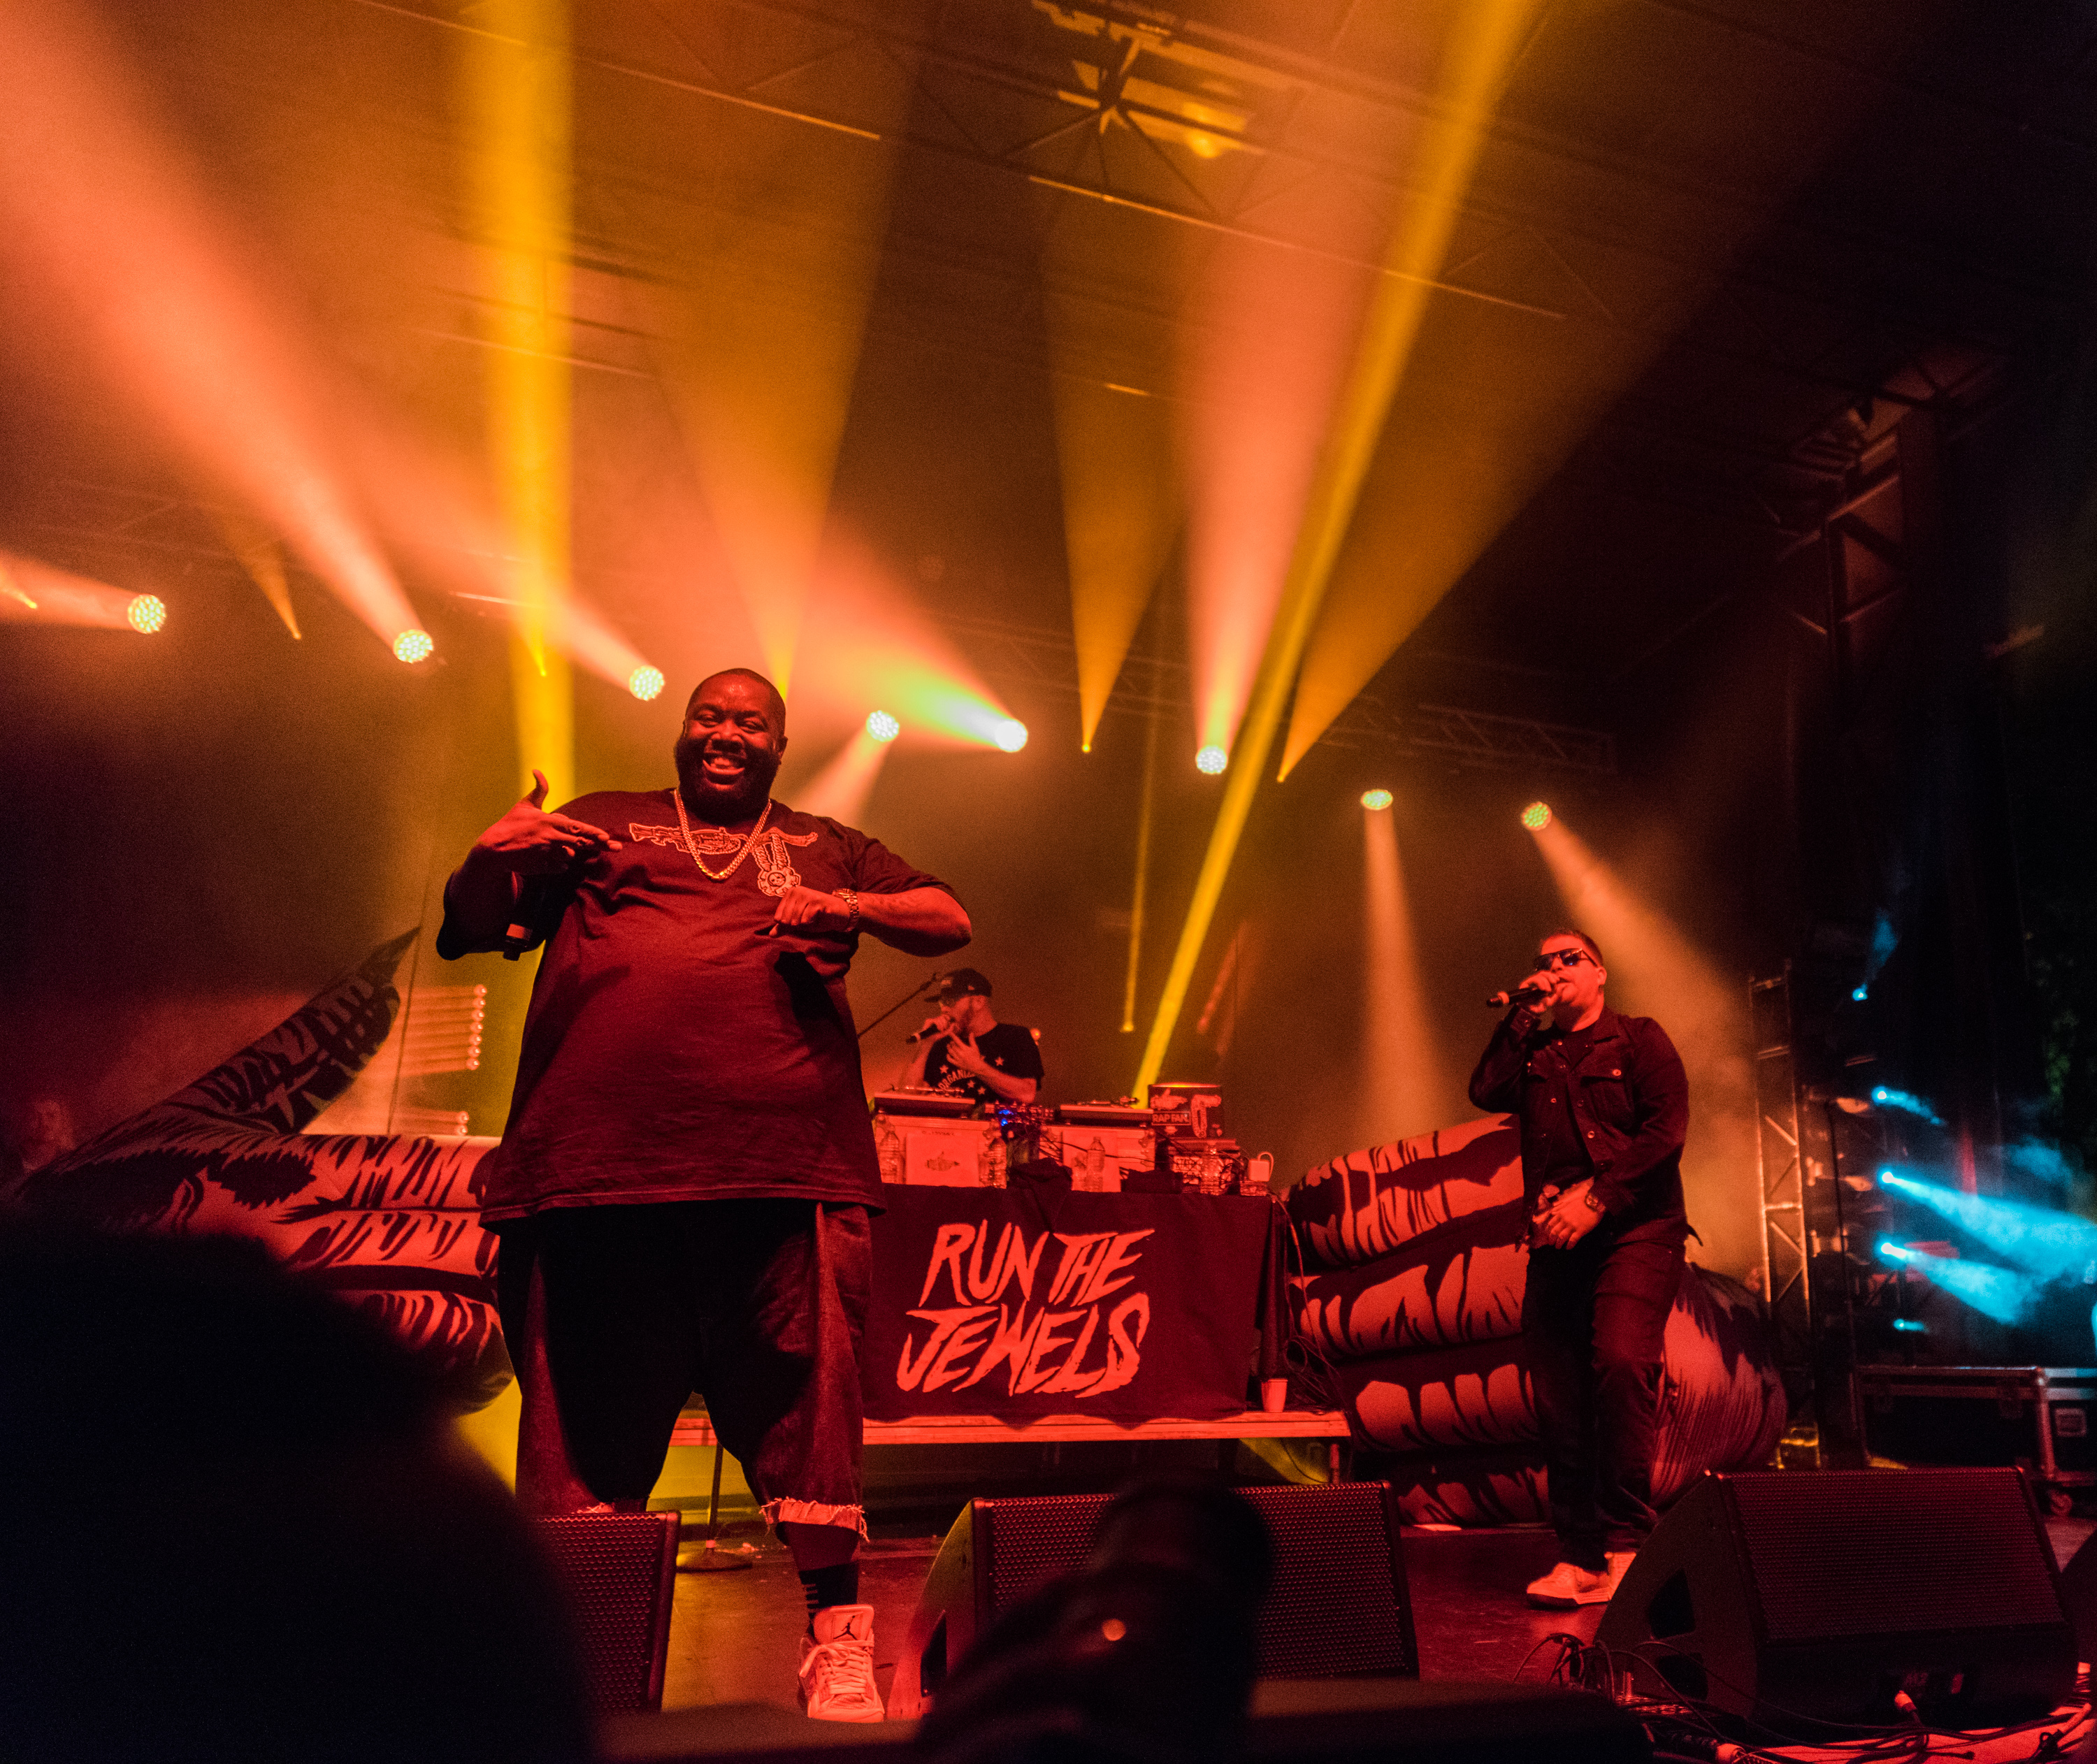 Killer Mike (L) and El-P of Run The Jewels perform on stage at Project Pabst in East Atlanta Village on October 1, 2016 in Atlanta, Georgia.